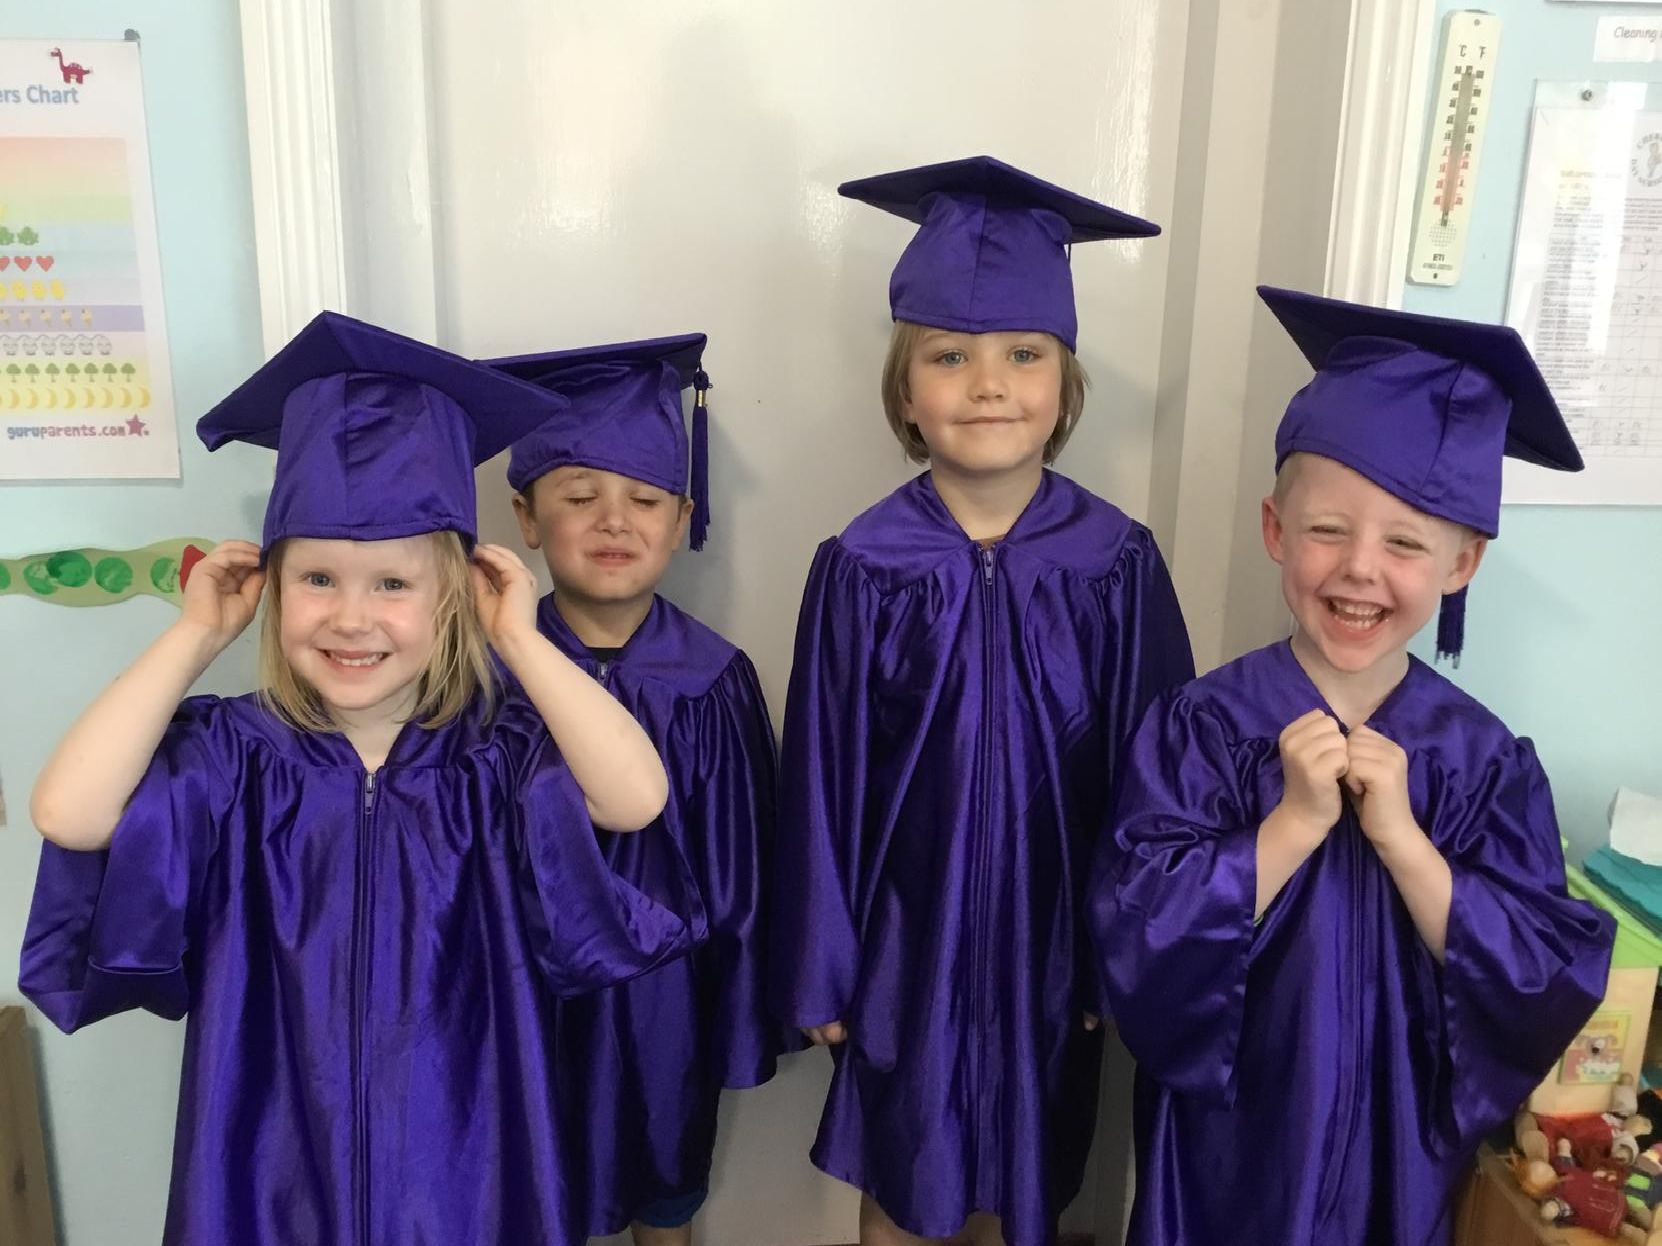 Youngsters excited to graduate